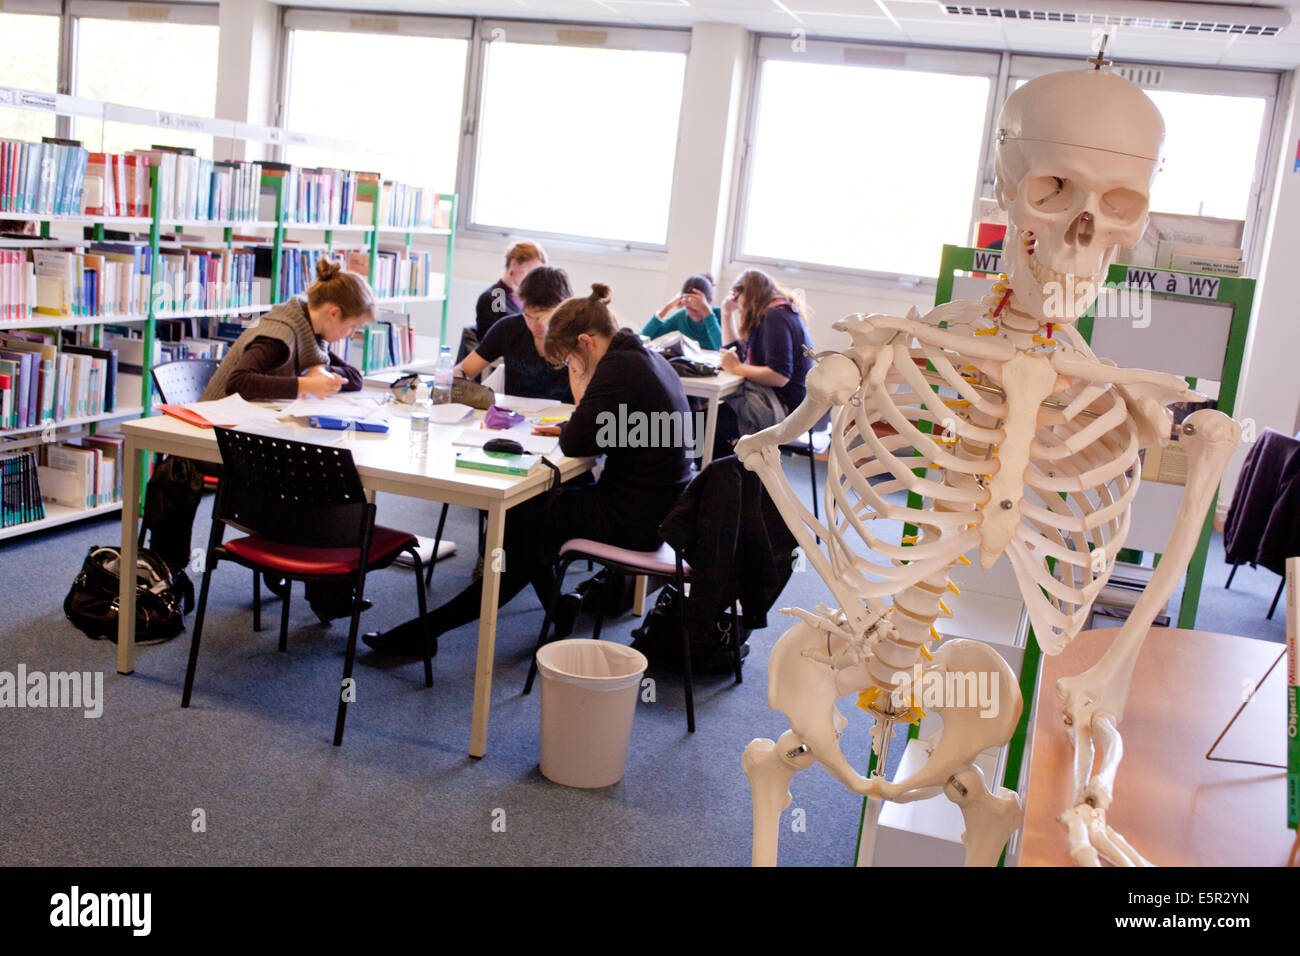 University library; Faculty of Medicine of Limoges, France. - Stock Image